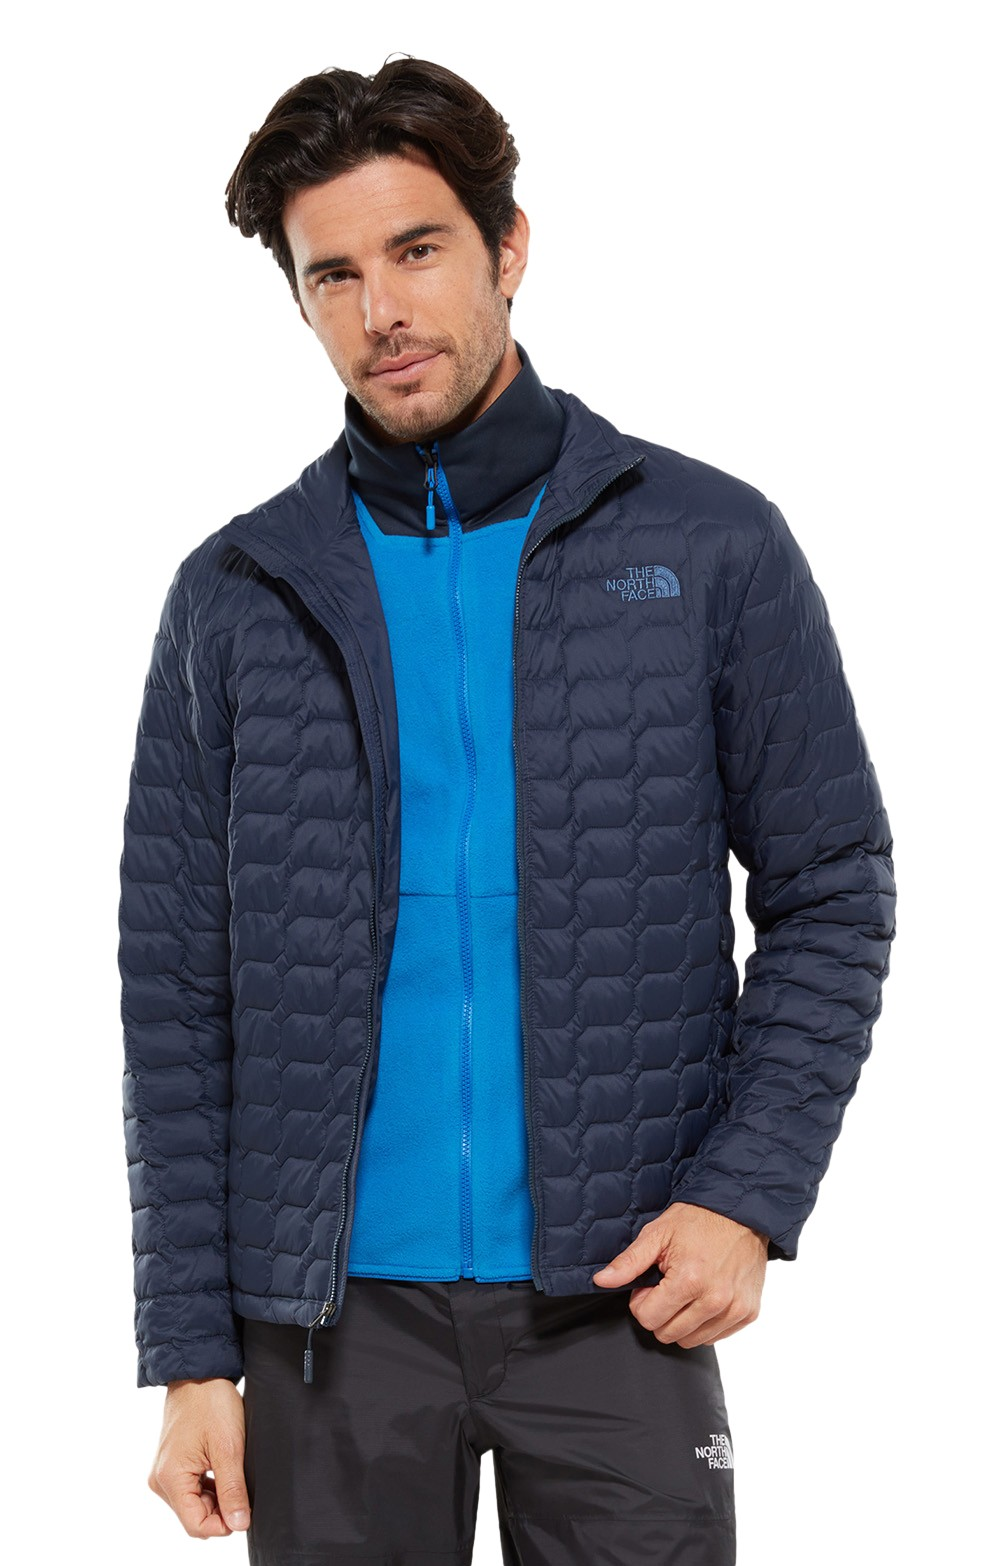 accb04c1e Men's The North Face Thermoball Jacket